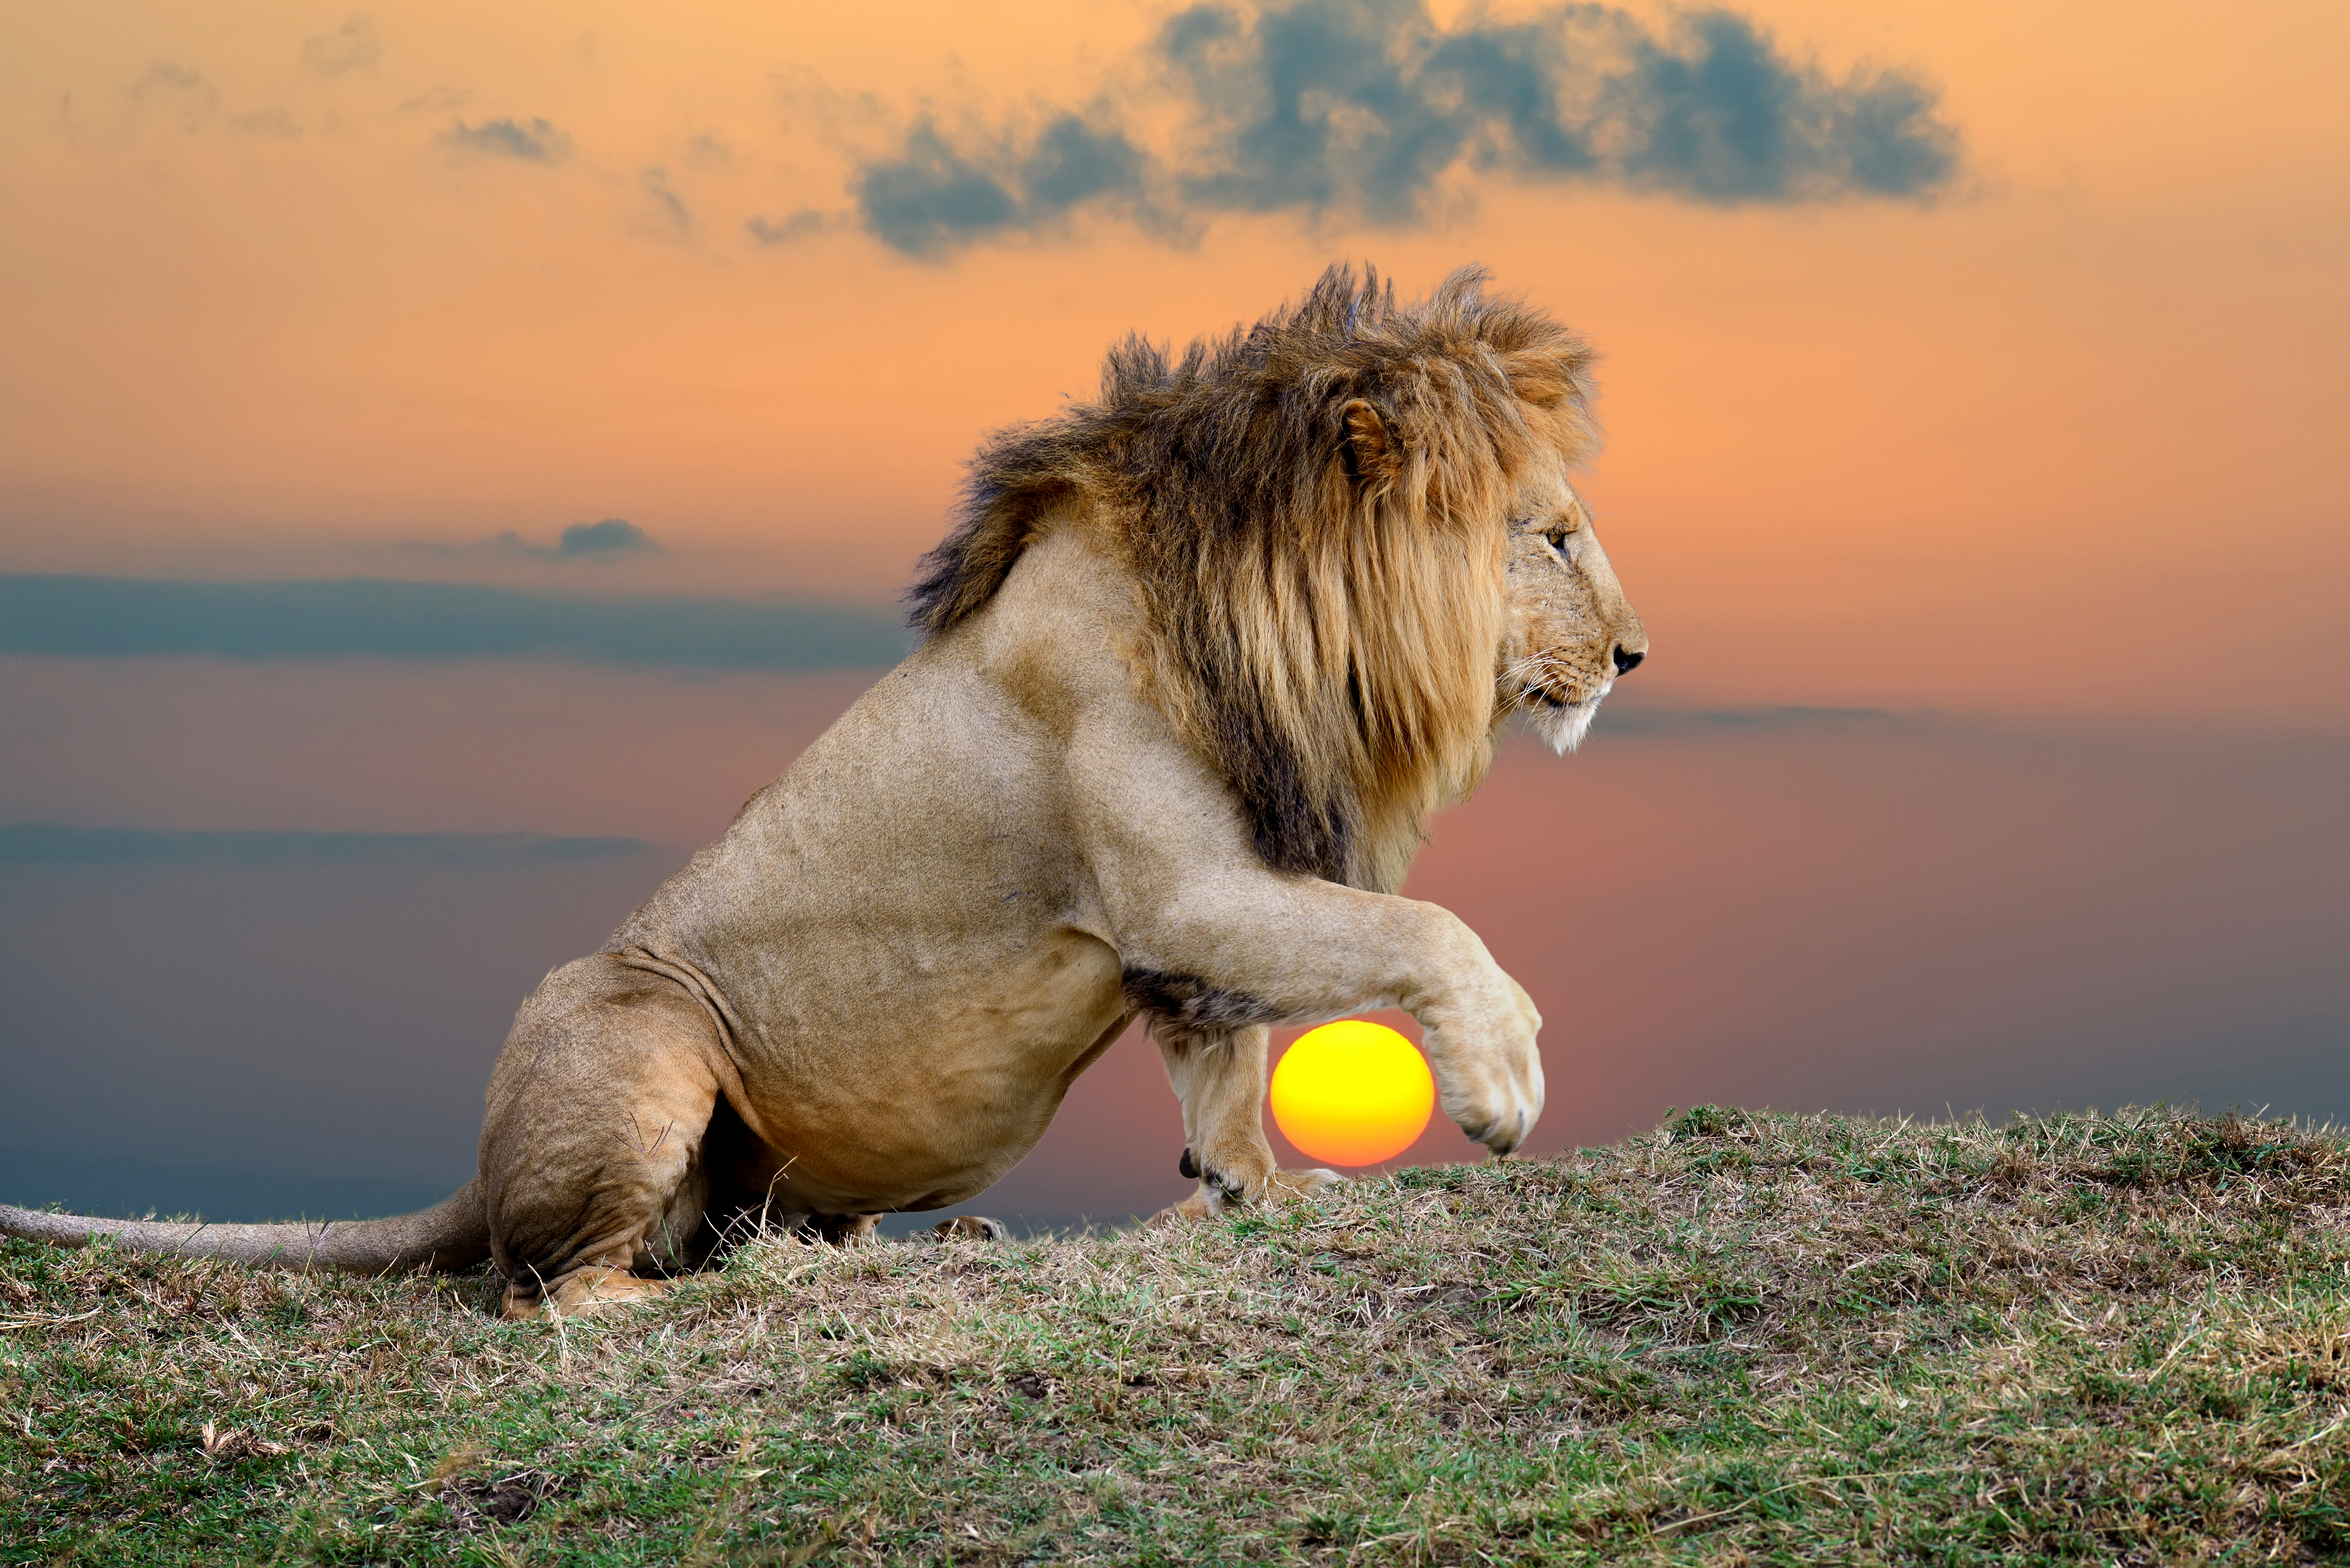 What Type Of Ecosystem Do Lions Live In